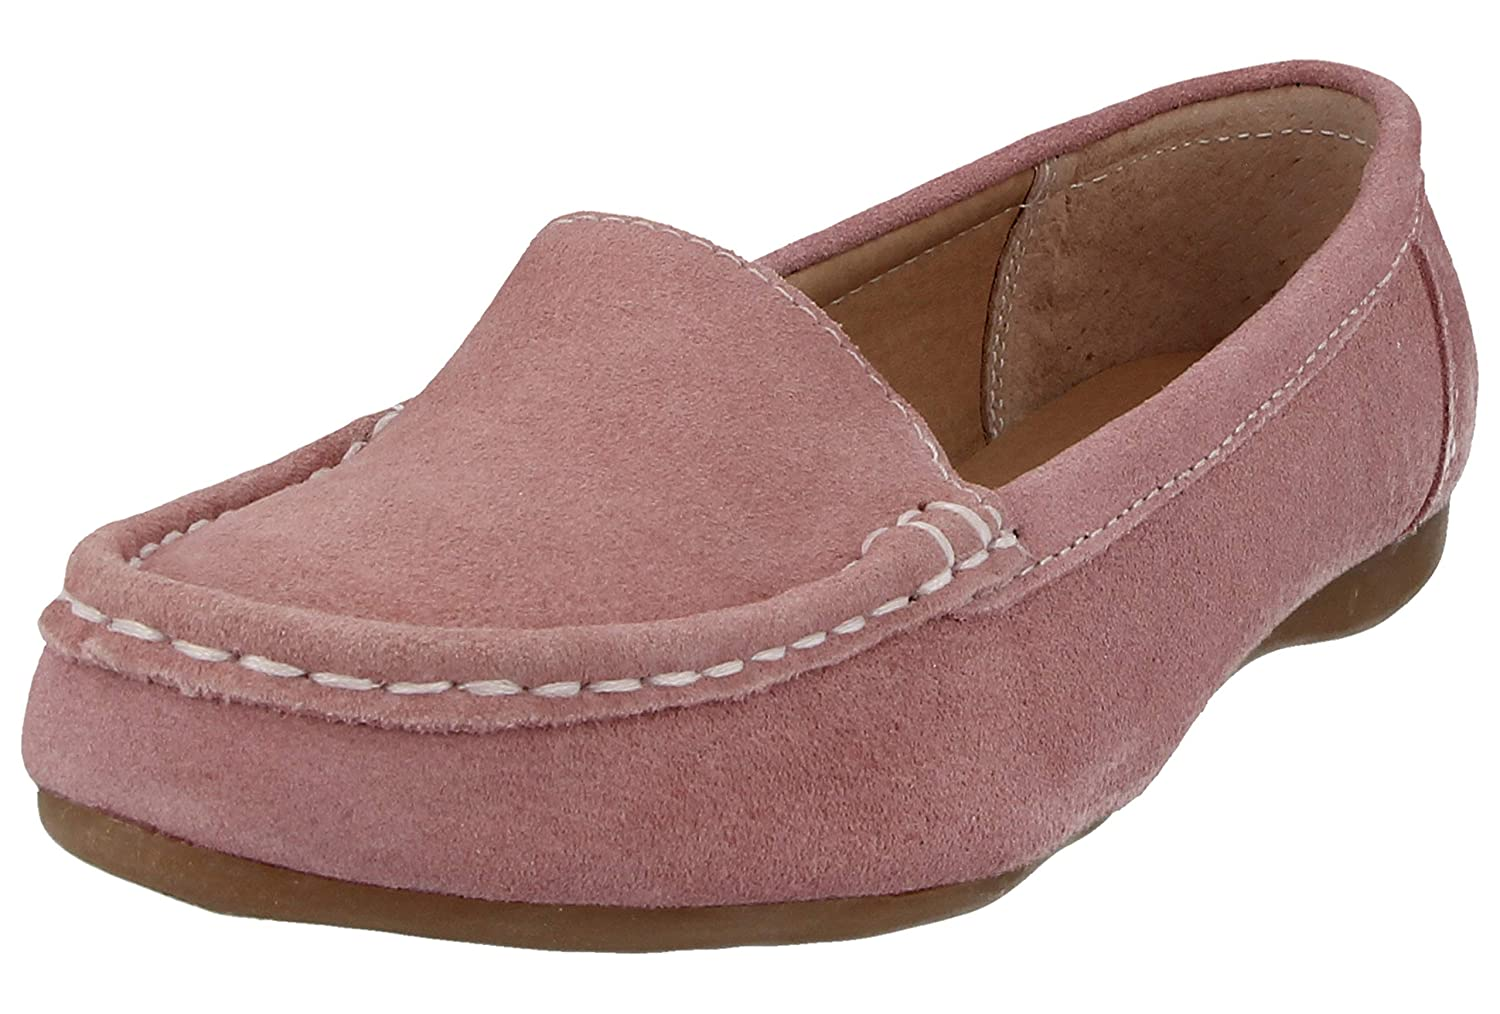 Ladies Real Suede Leather Slip On Tassel Jewels Flat Moccasin Loafers Shoes Size 3-8